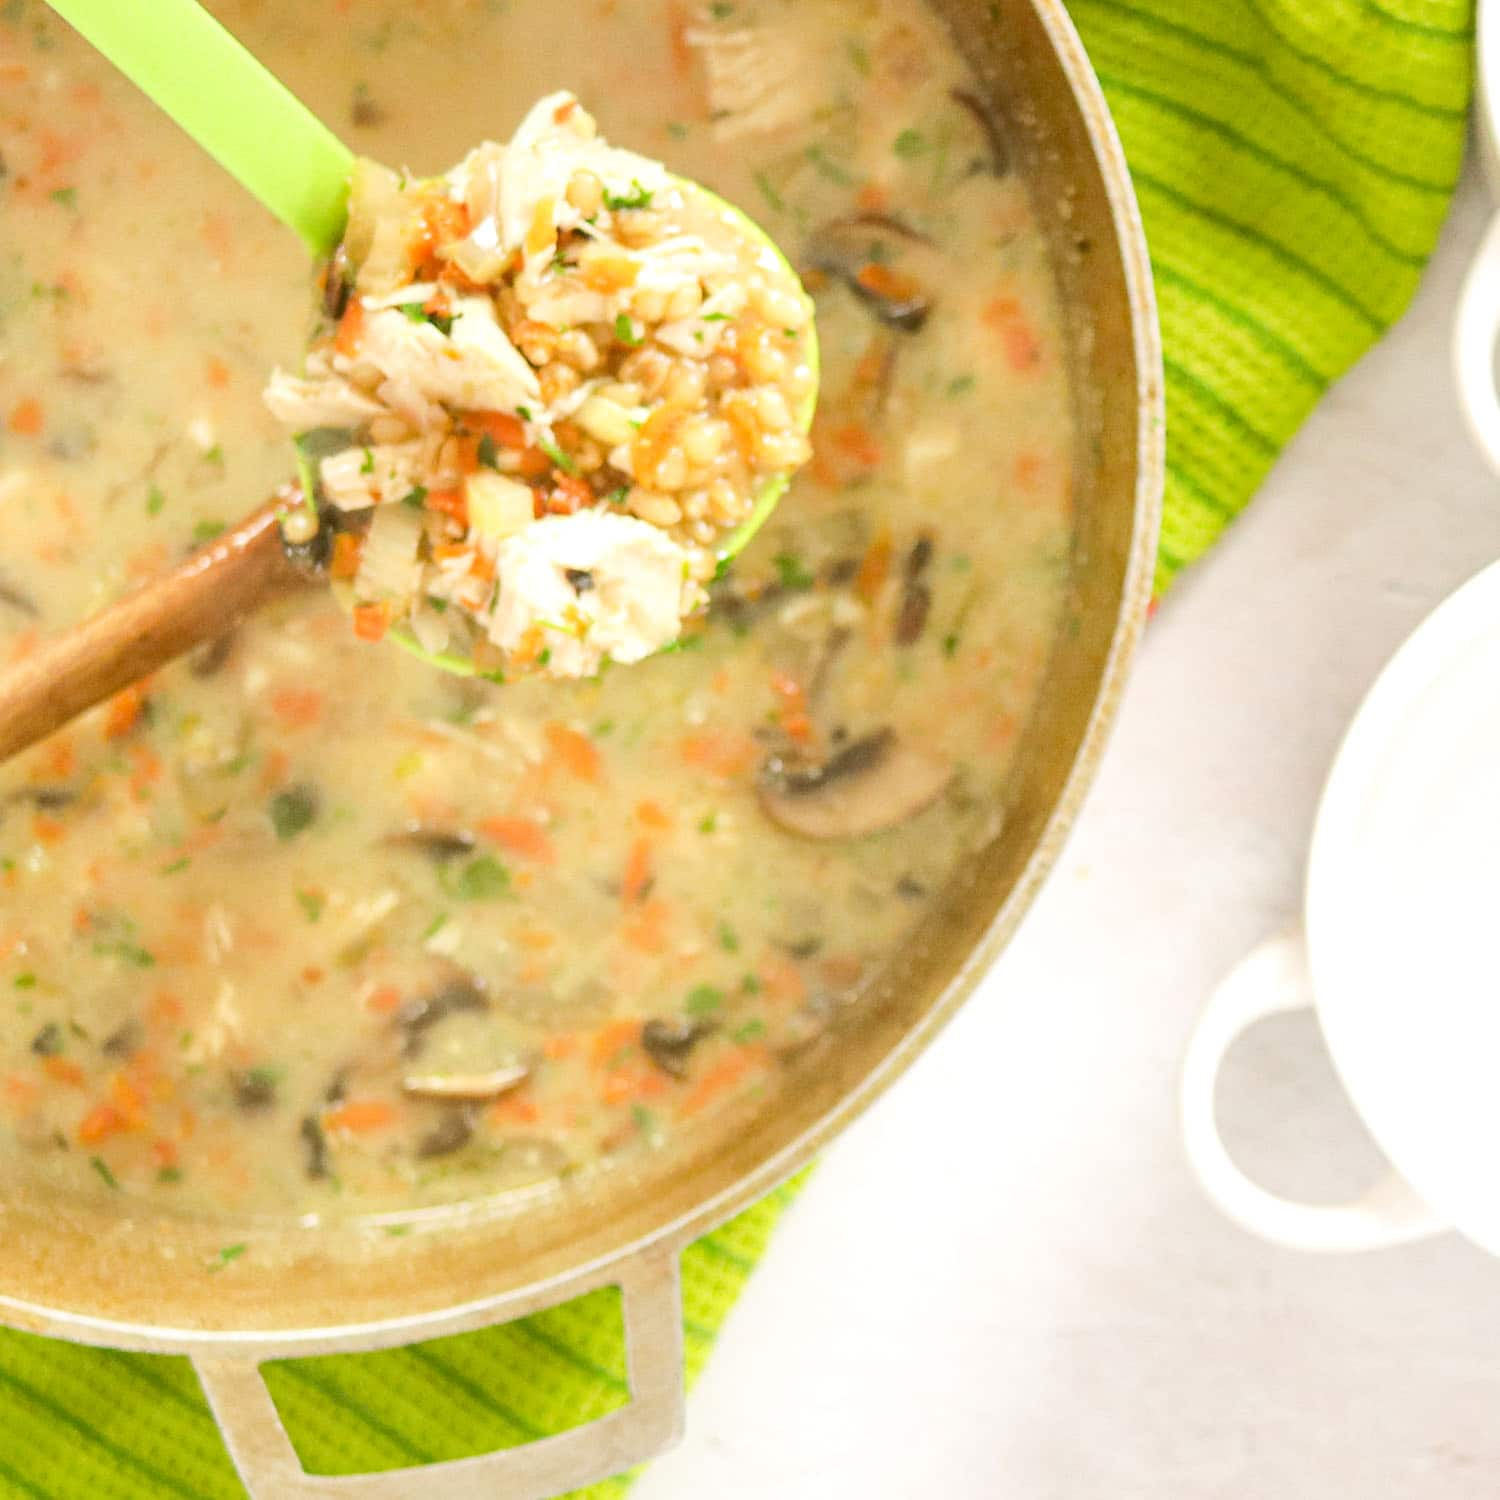 Pot of Creamy Chicken Soup with soup in ladle